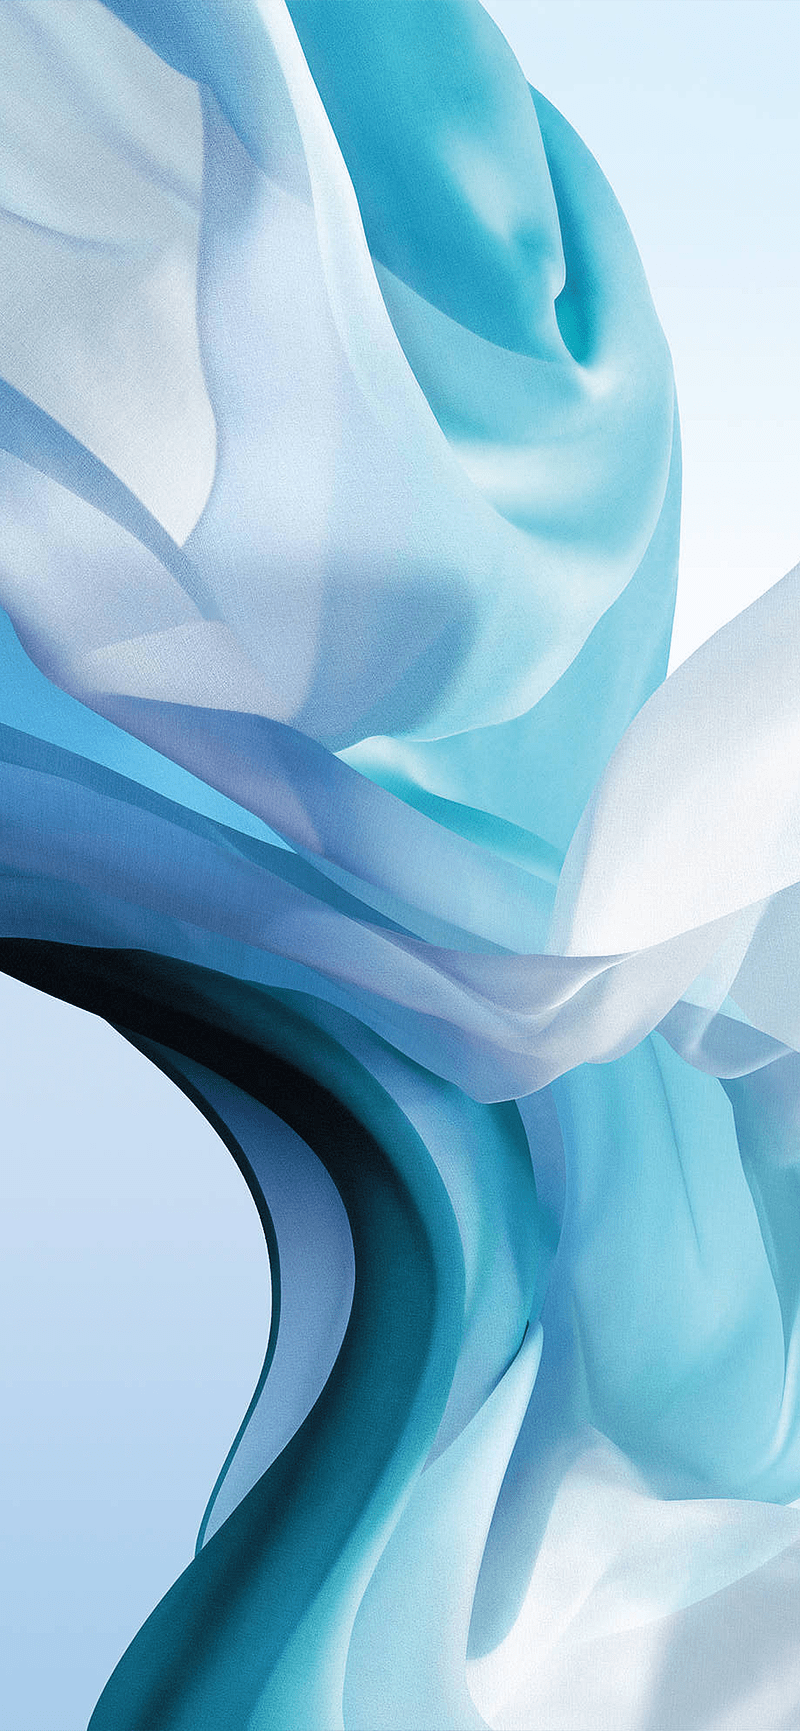 Download New iPad Pro & MacBook Air Wallpapers for iPhone